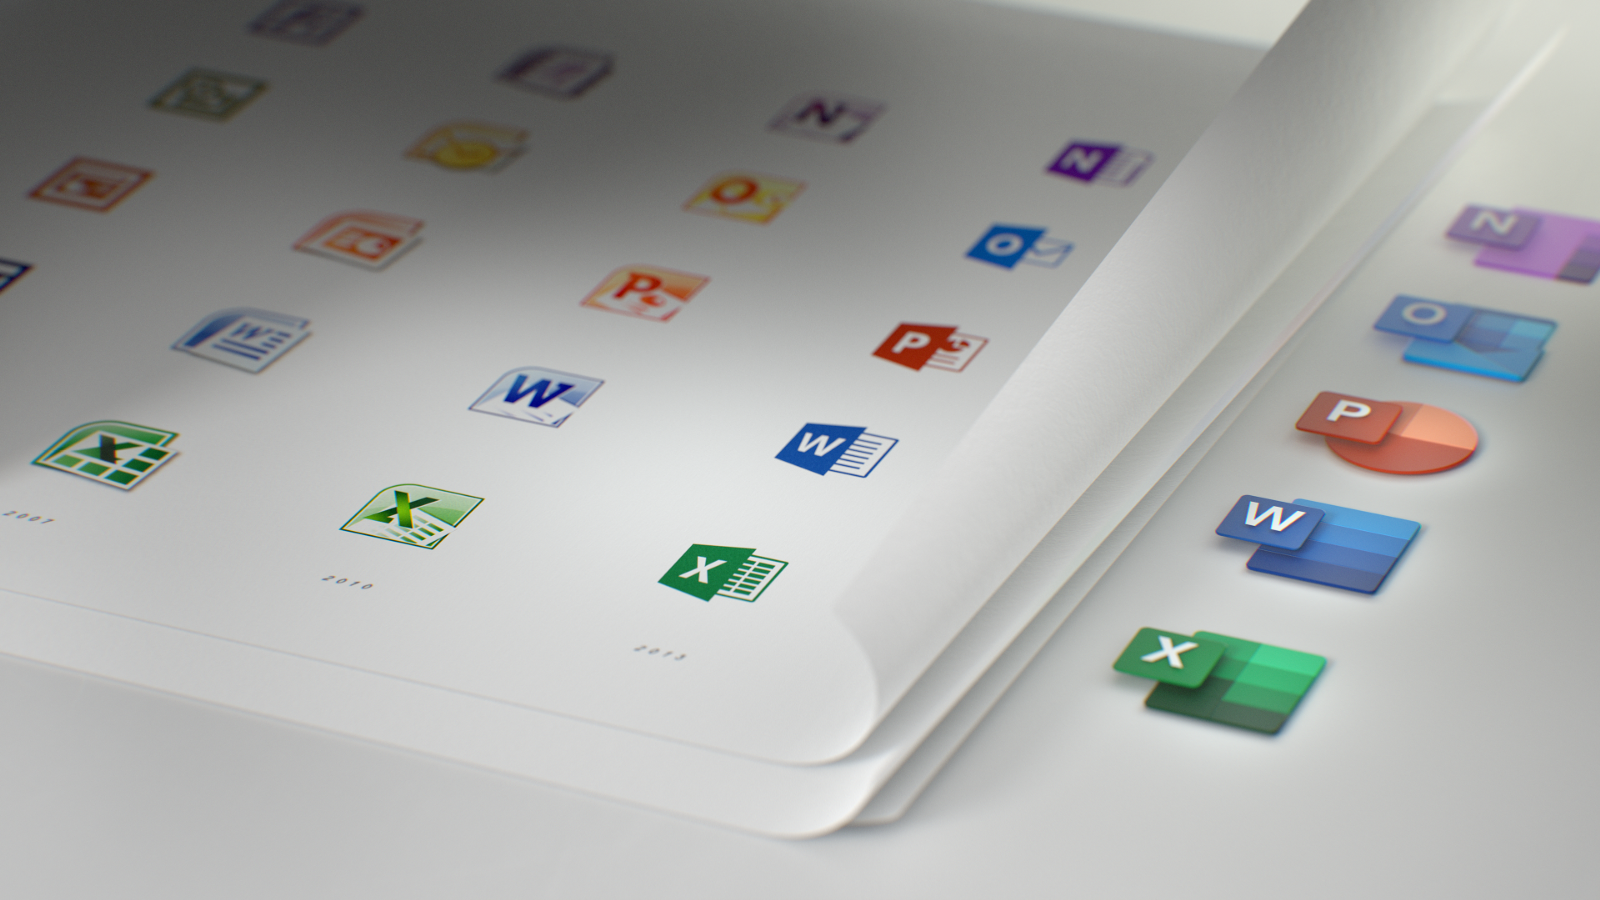 Microsoft's new icons for Office is a part of a design